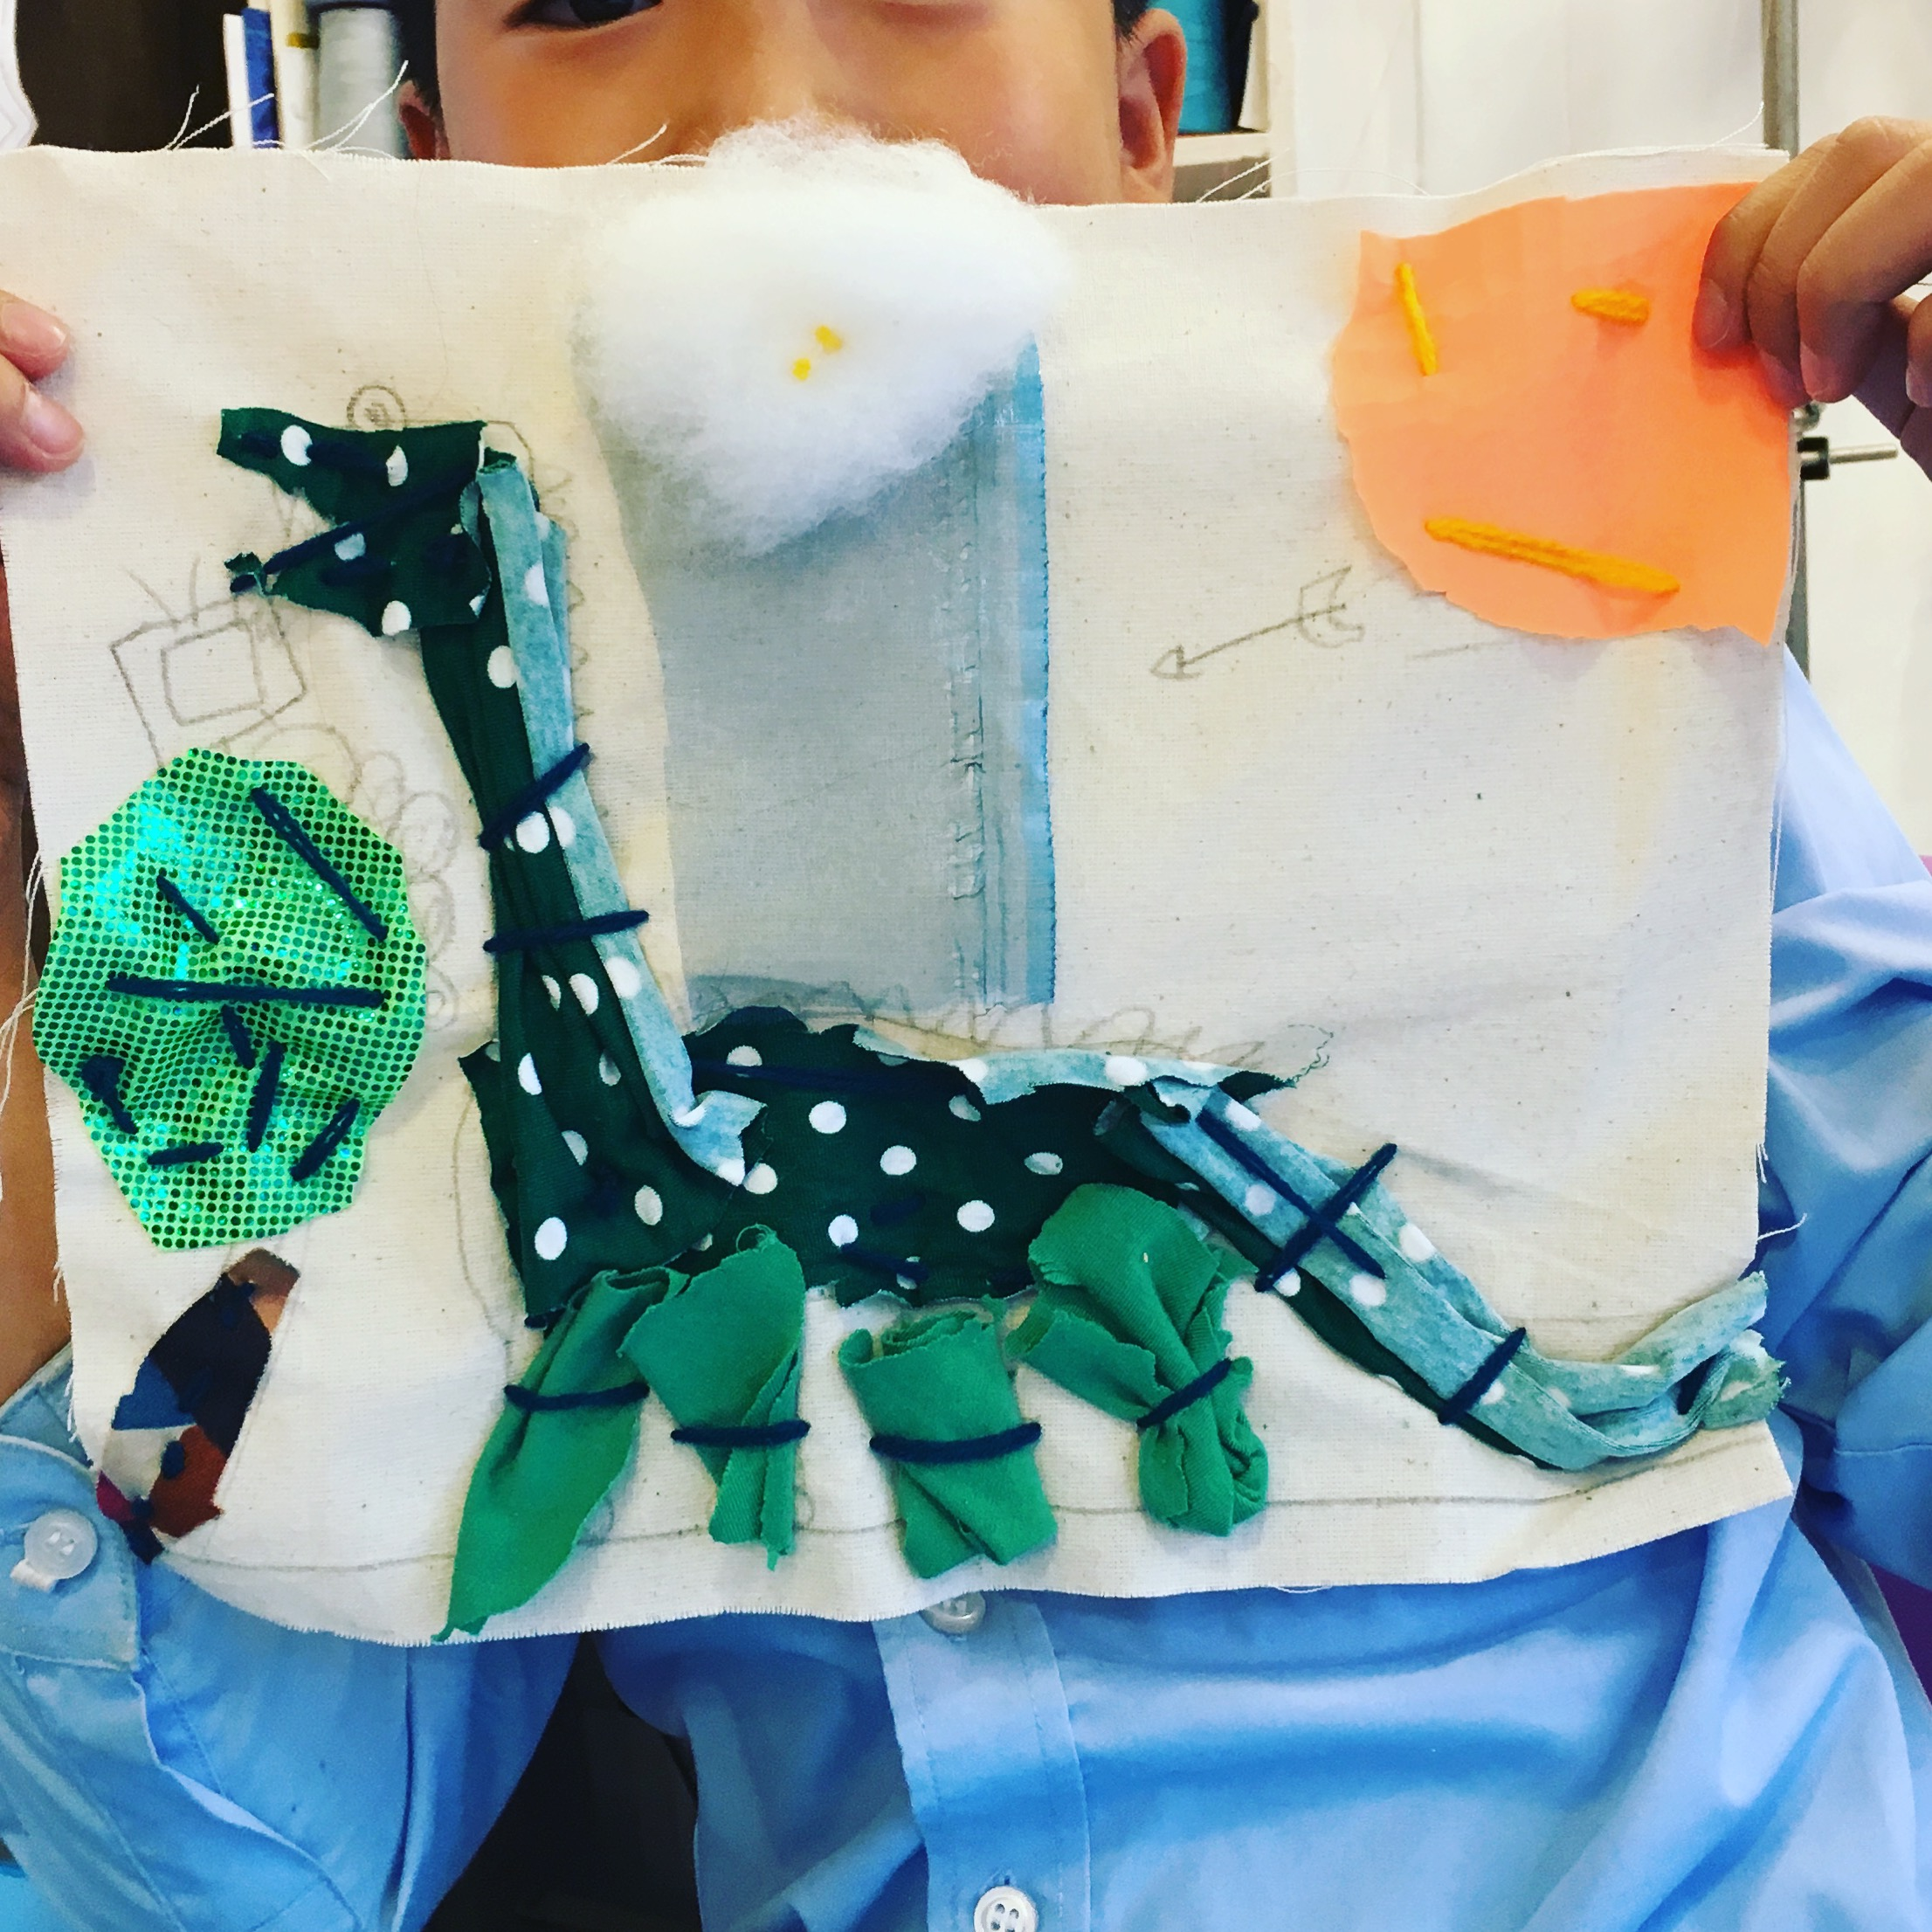 Discover & Create - Applique - With a wide selection of fabrics and wool these makers cut and stitched their own design onto heavy cotton drill. D. was really happy with his dinosaur -